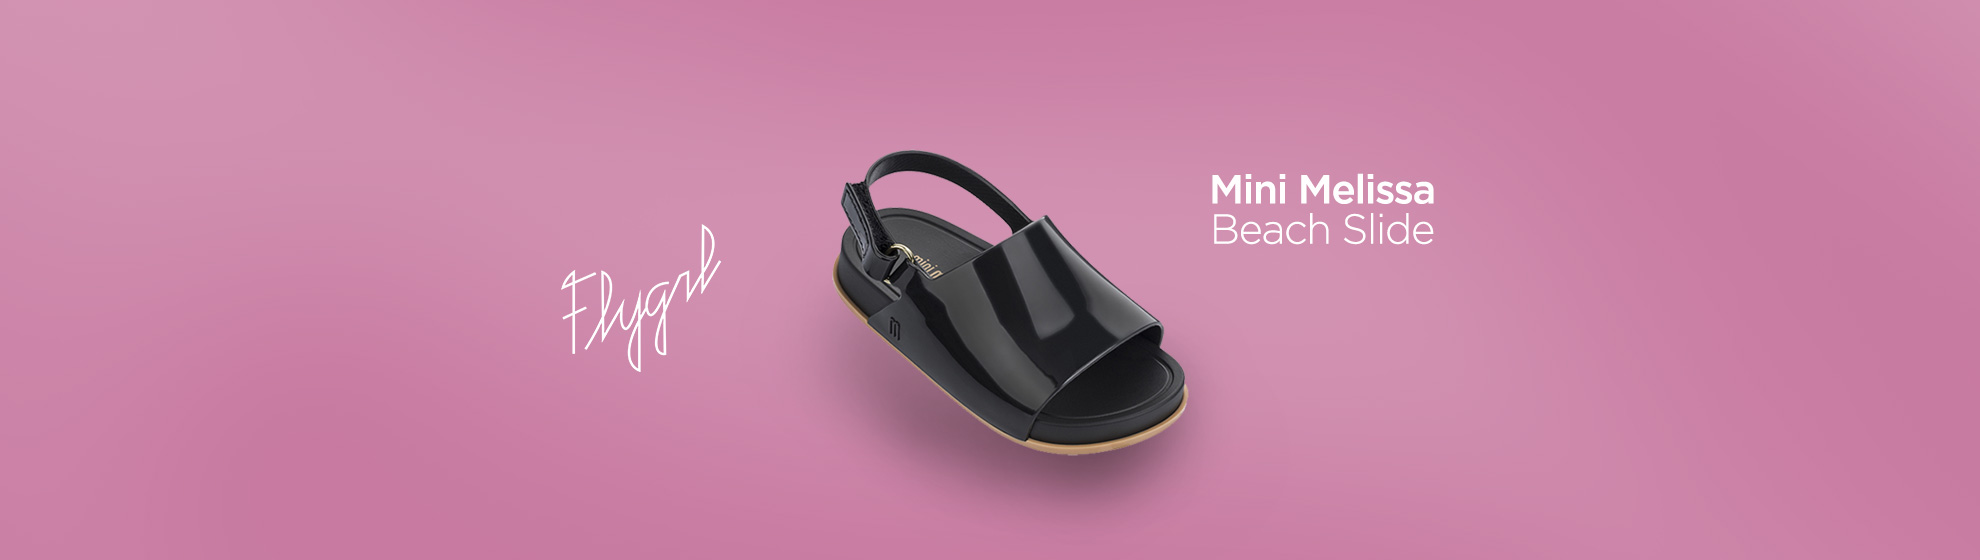 Mini Melissa Beach Slide